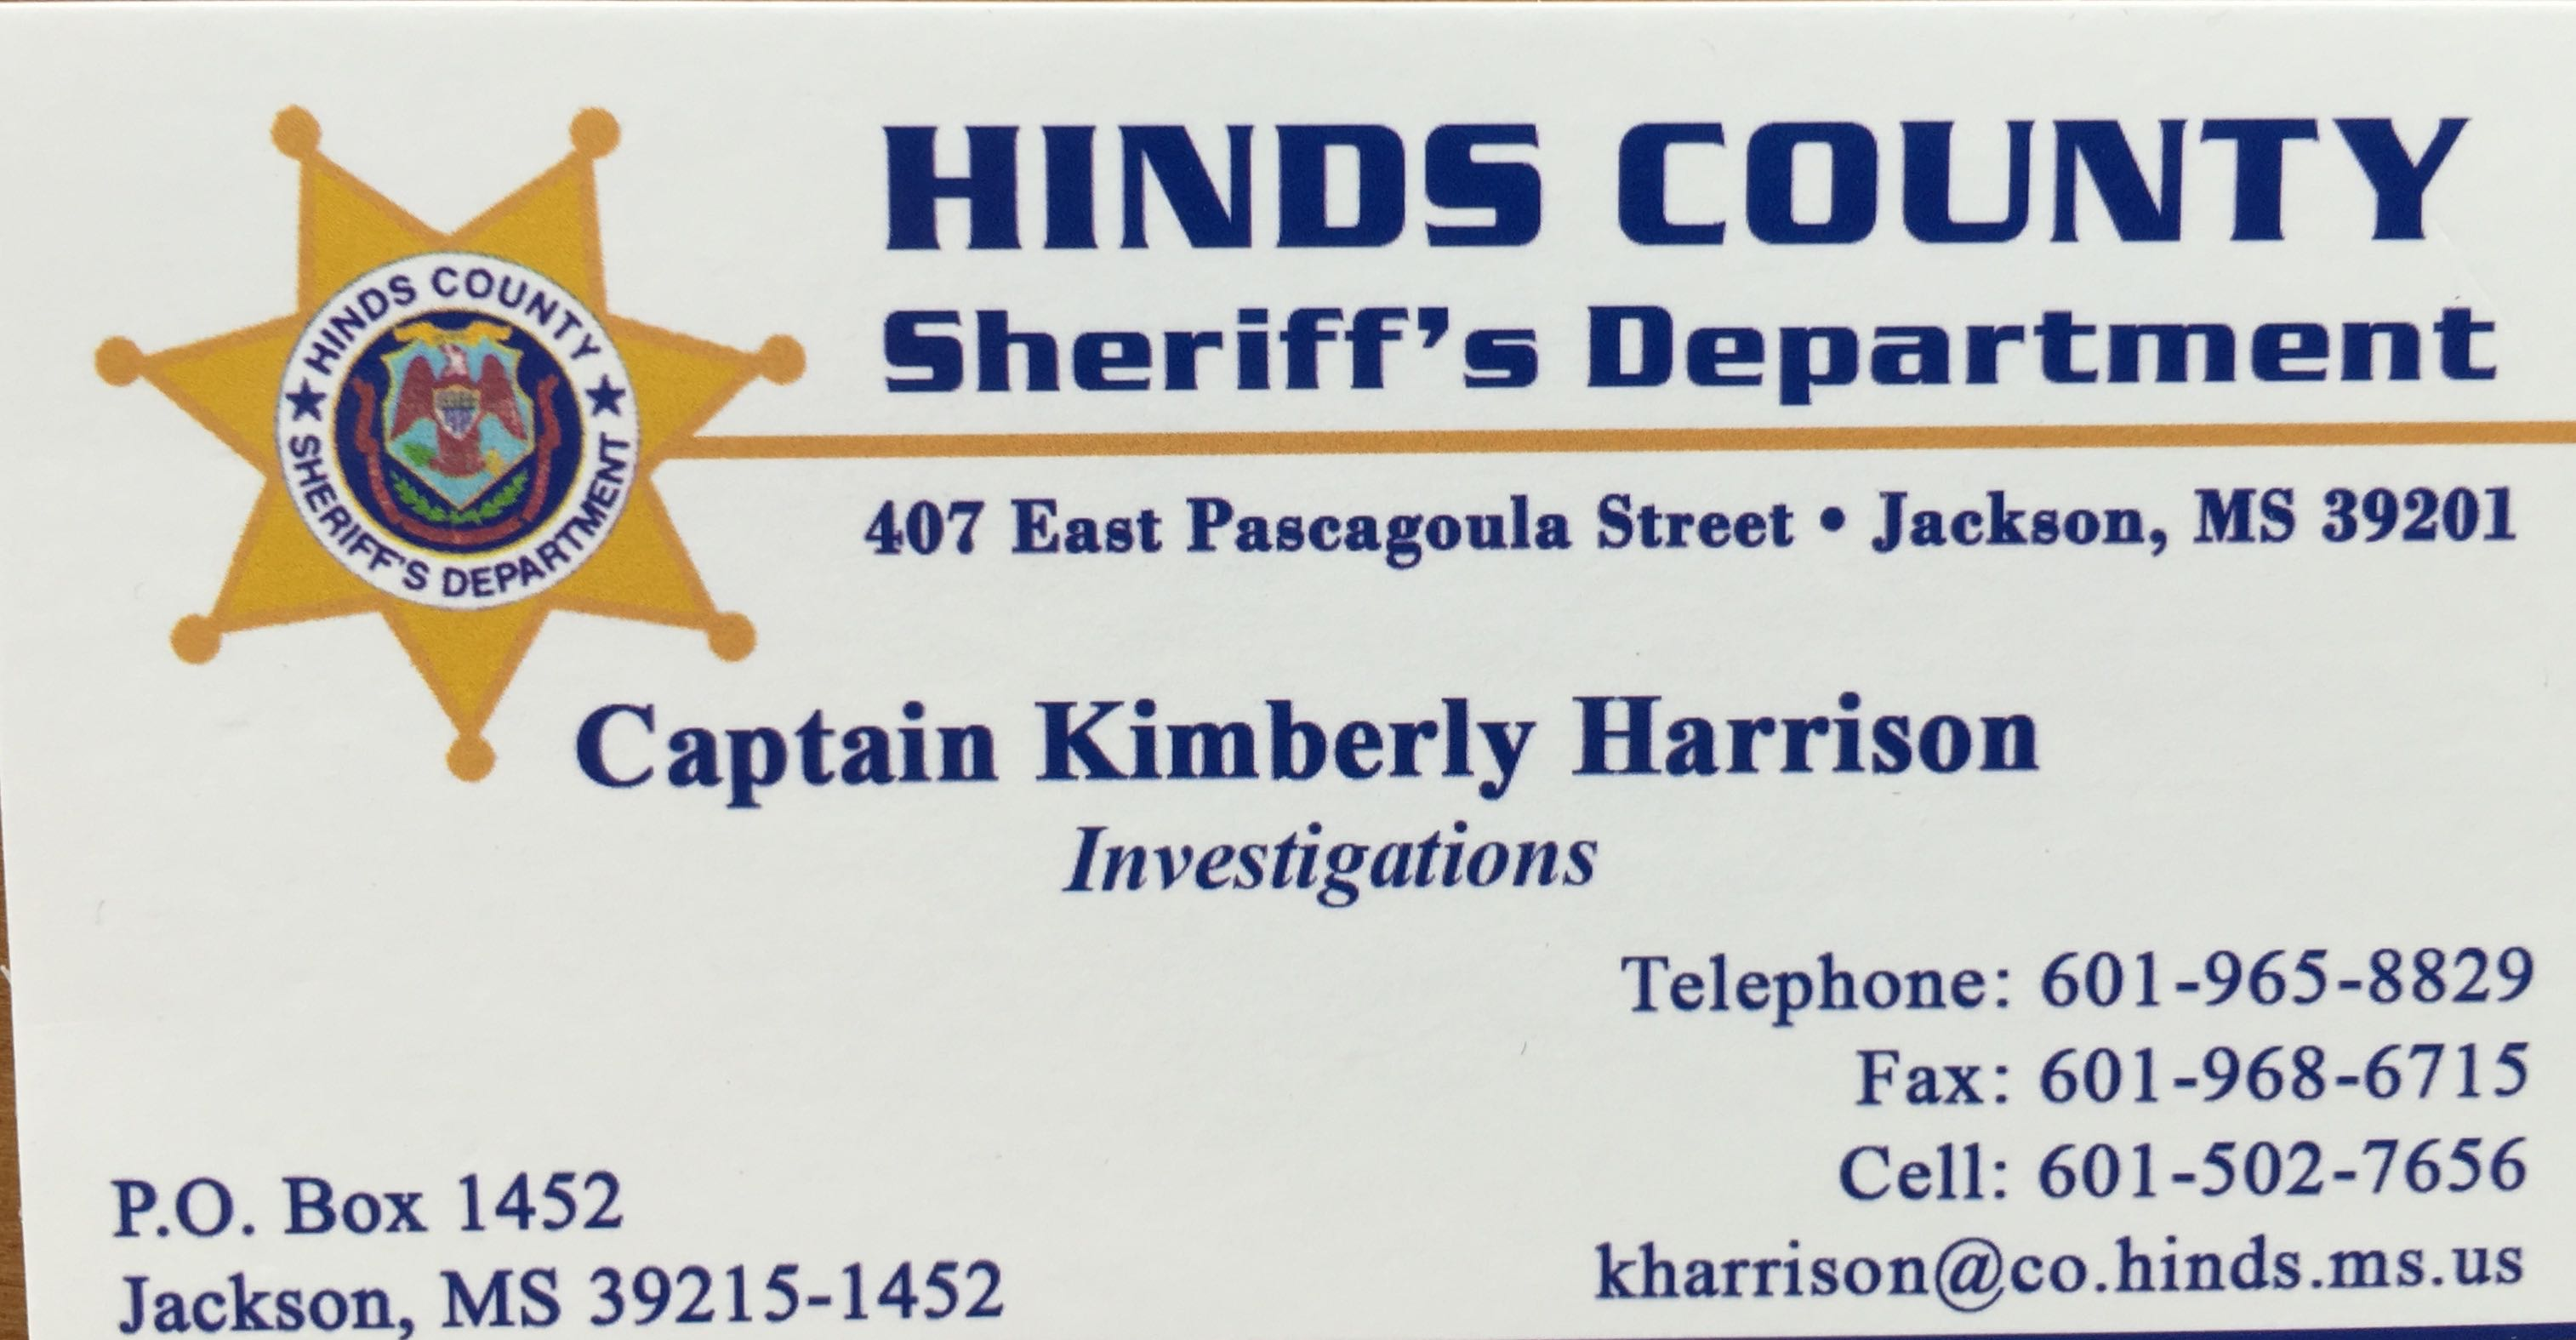 harris county sheriffs department phone number - HD 3028×1575